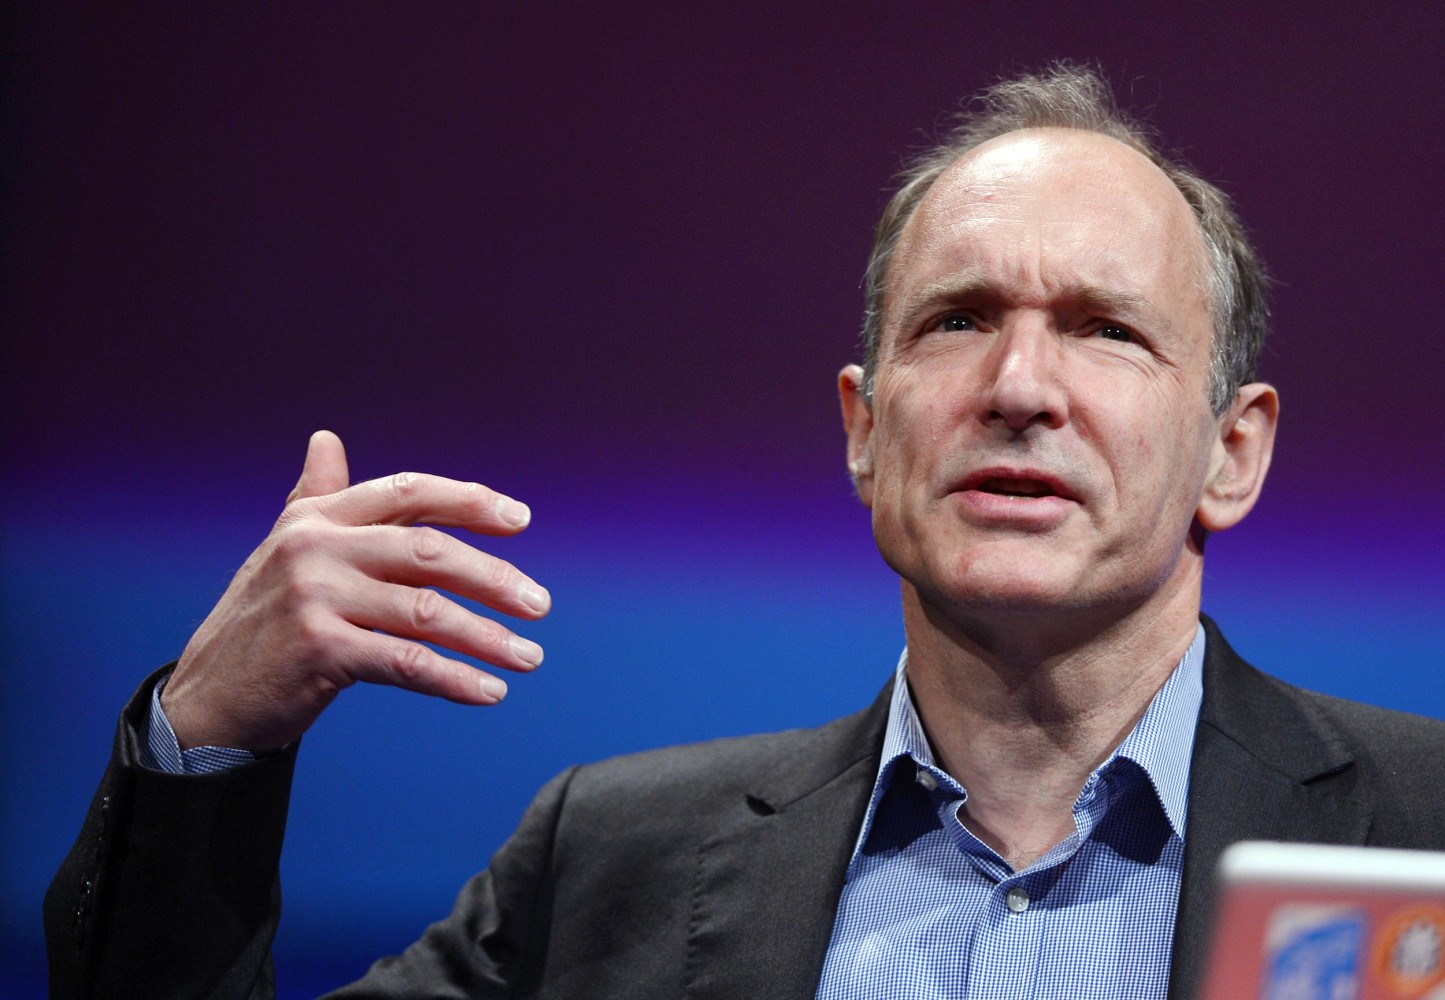 tim berners lee the inventor of the internet A twitter user just got called out for mansplaining the internet to the bloke who invented it – doh the whopper took place amid the replies to sir tim berners-lee's passionate series of tweets on the facebook data scandal.